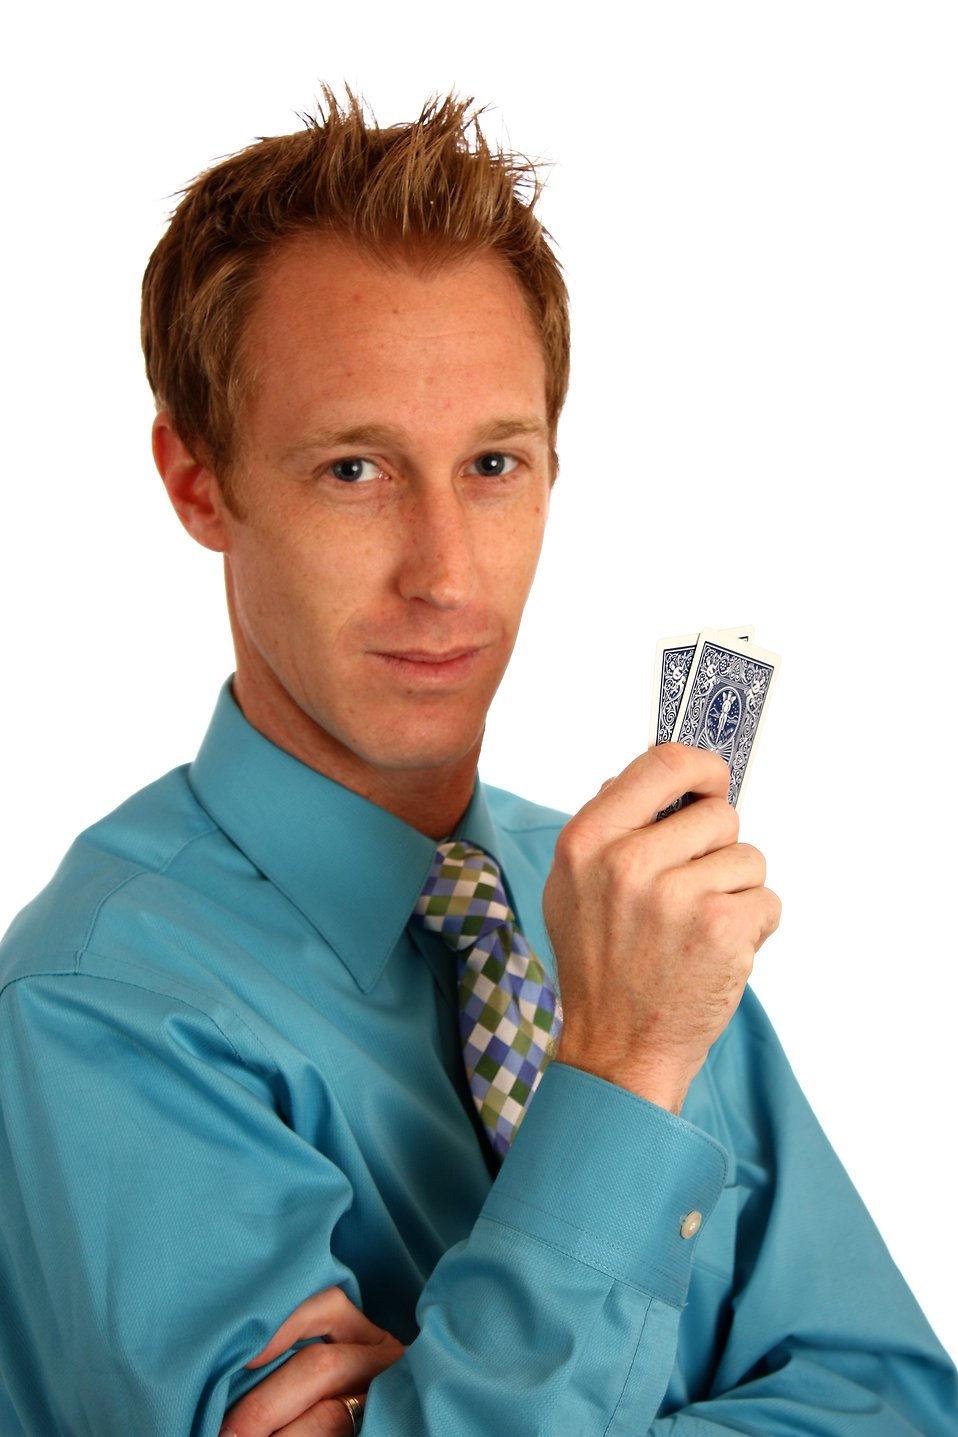 A young businessman holding a pair of playing cards : Free Stock Photo